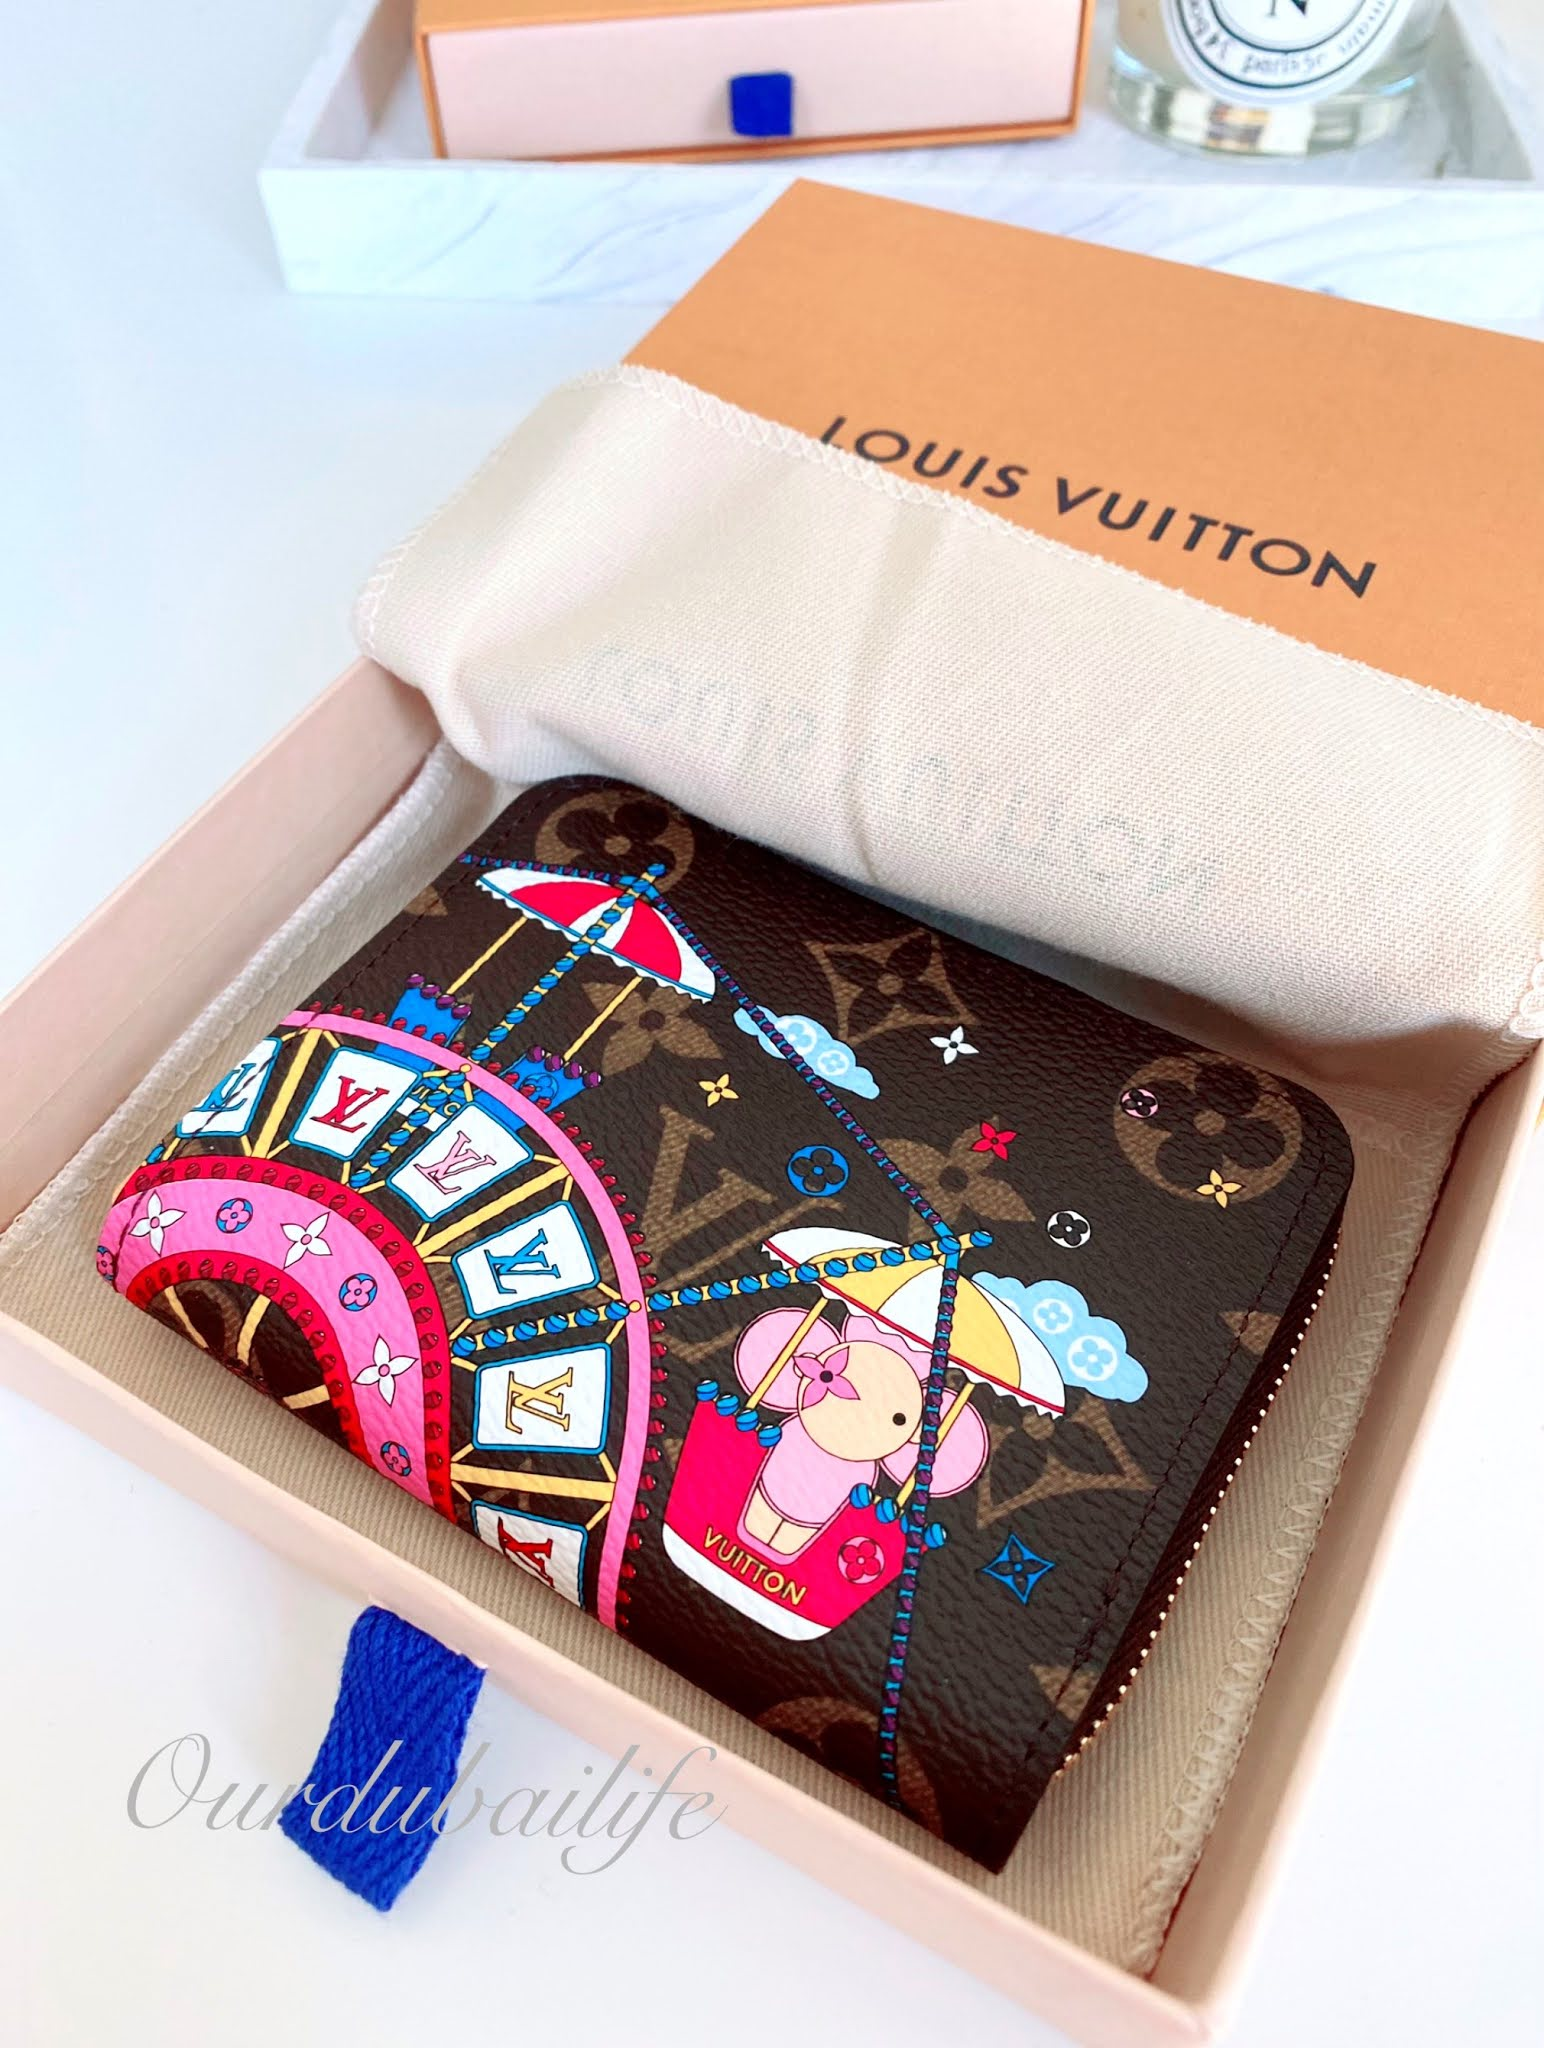 Louis Vuitton Christmas 2020 Vivienne Ferris Wheel Zippy Coin Purse